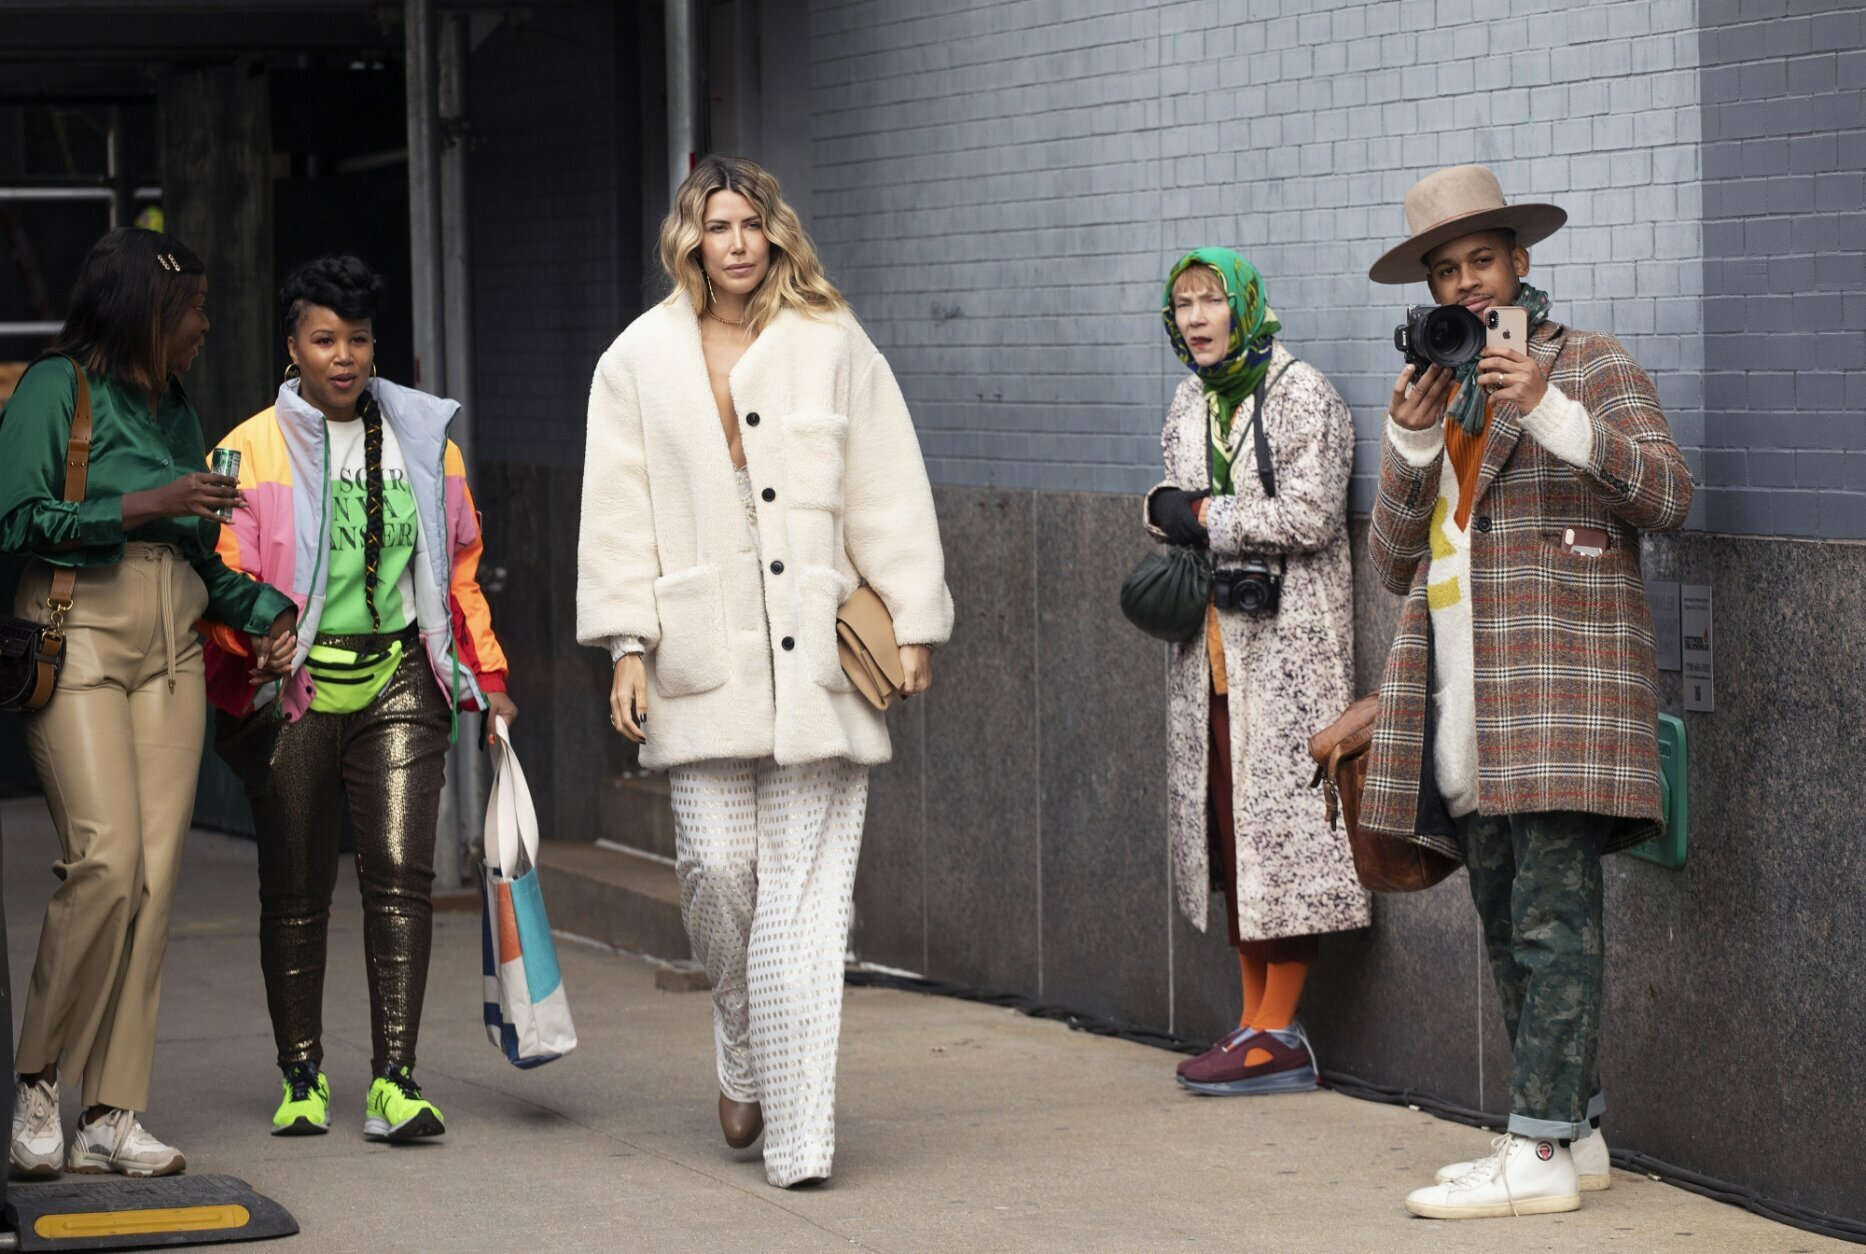 Photographer Karston Tannis, right, works outside a show during Fashion Week, Wednesday, Feb. 12, 2020, in New York. (AP Photo/Mark Lennihan)